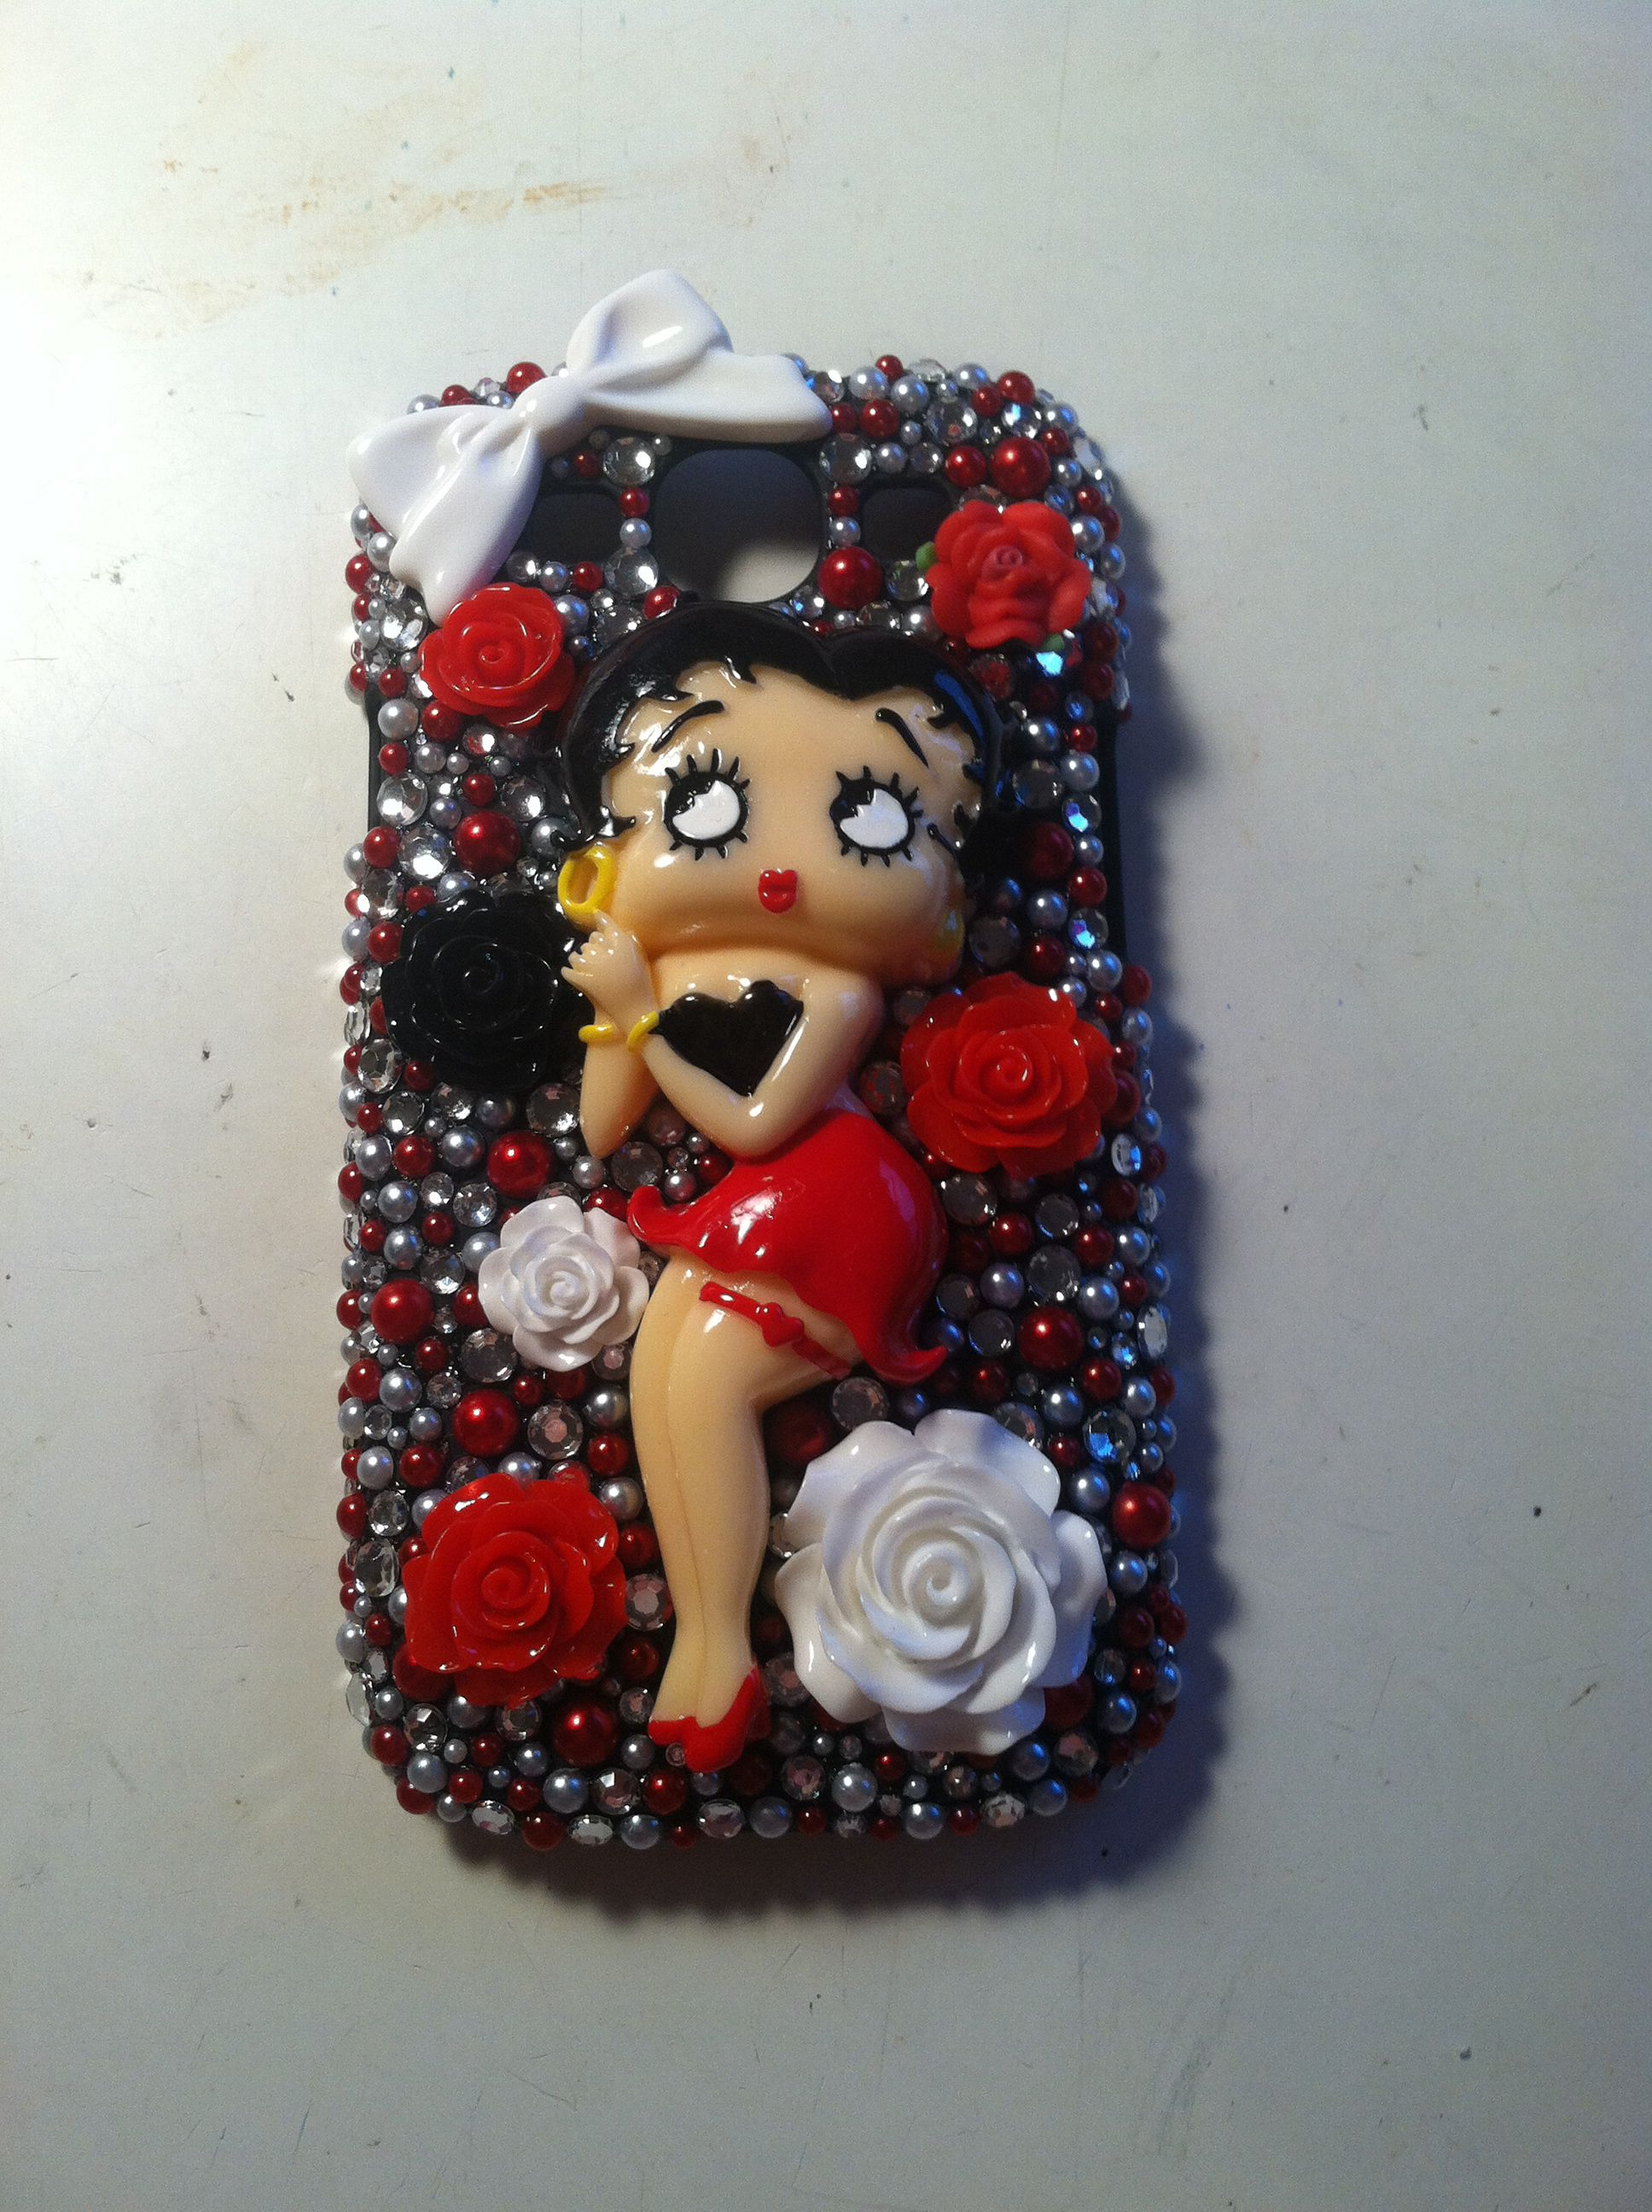 Galaxy 3 Betty Boop phone case from my shop on Etsy- Cherbearphonecases